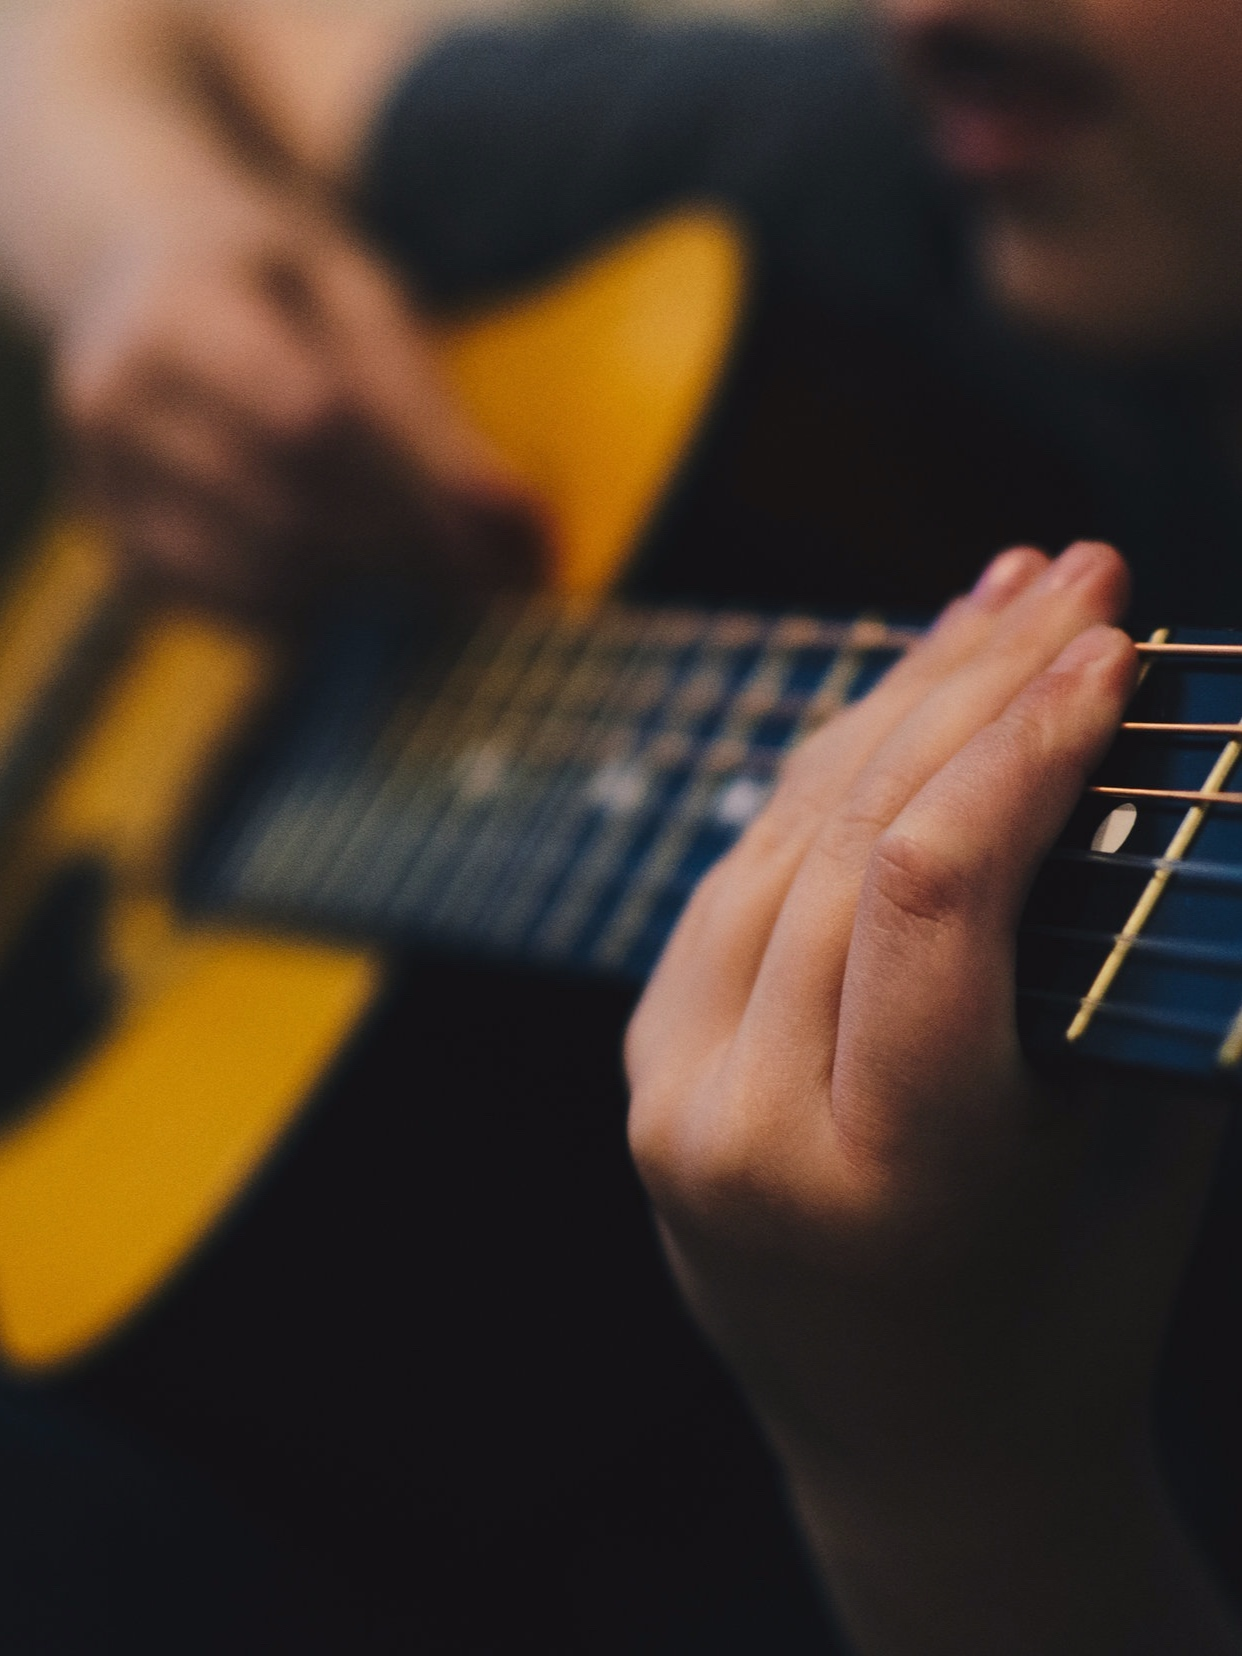 songwriting - Starting at $199 / SongGot great lyrics that need a great melody? We have professional songwriters available to put music to your poetry! Contact us for details.